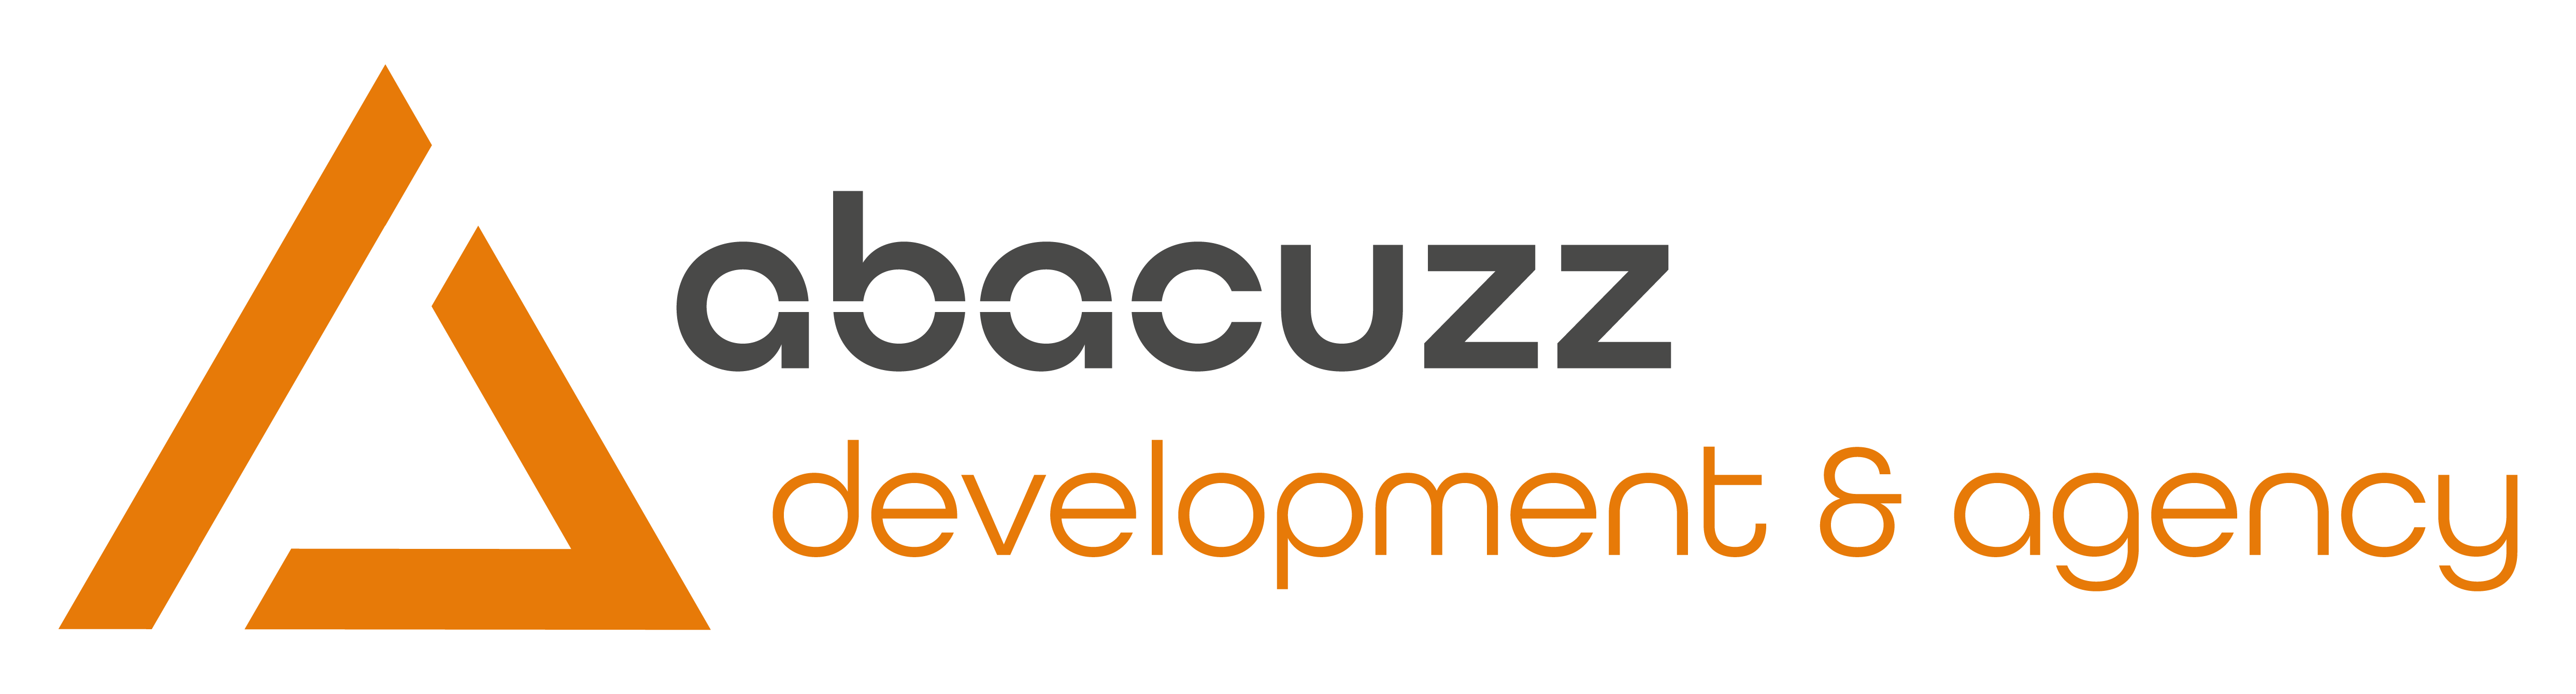 Abacuzz Agency